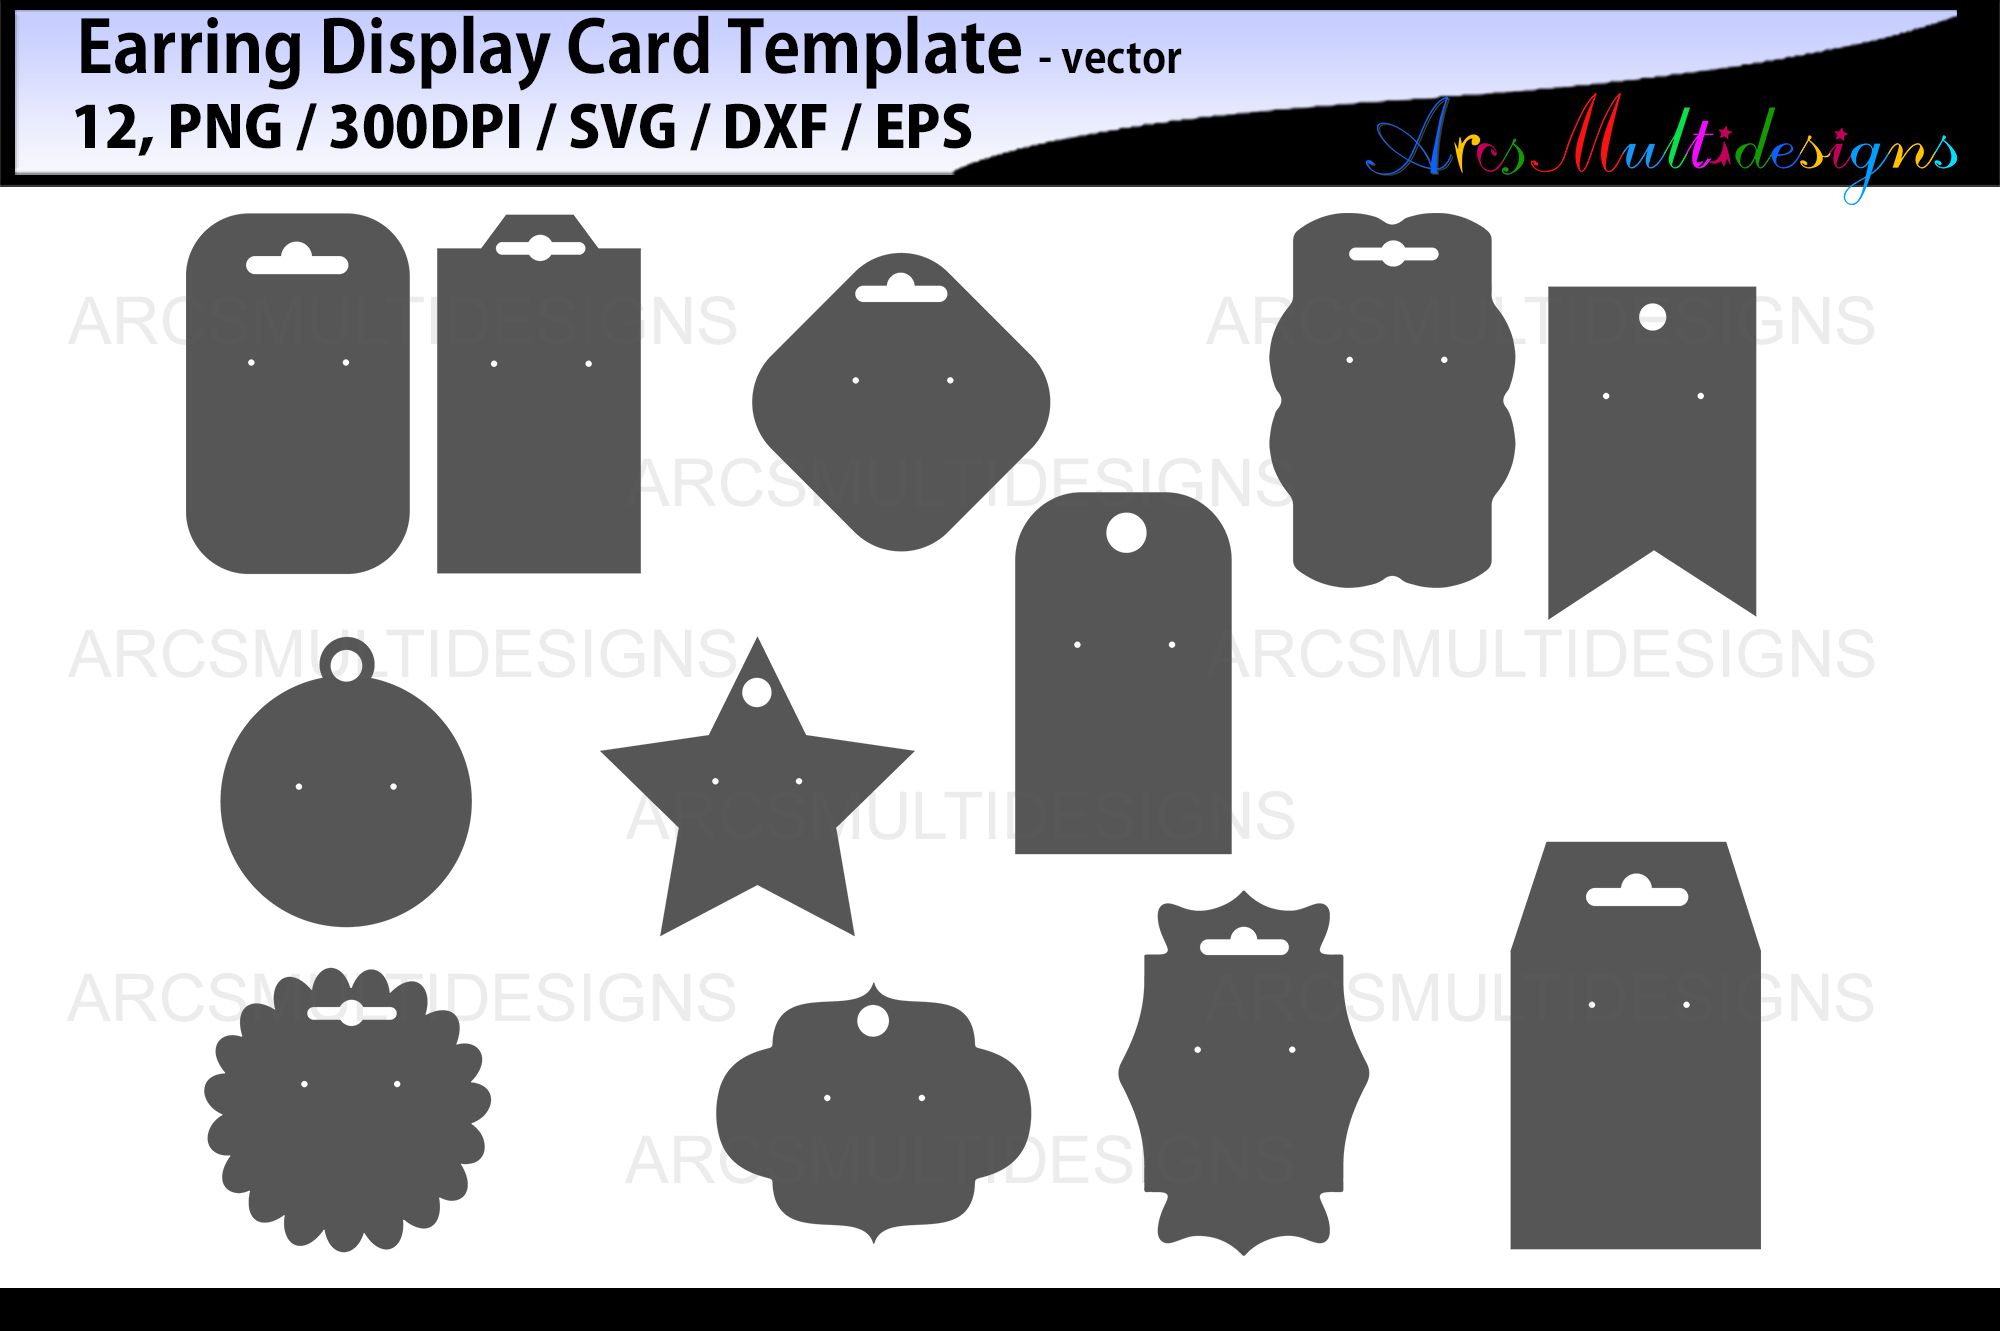 Download Free Earring Display Cards Template Graphic By Arcs Multidesigns for Cricut Explore, Silhouette and other cutting machines.